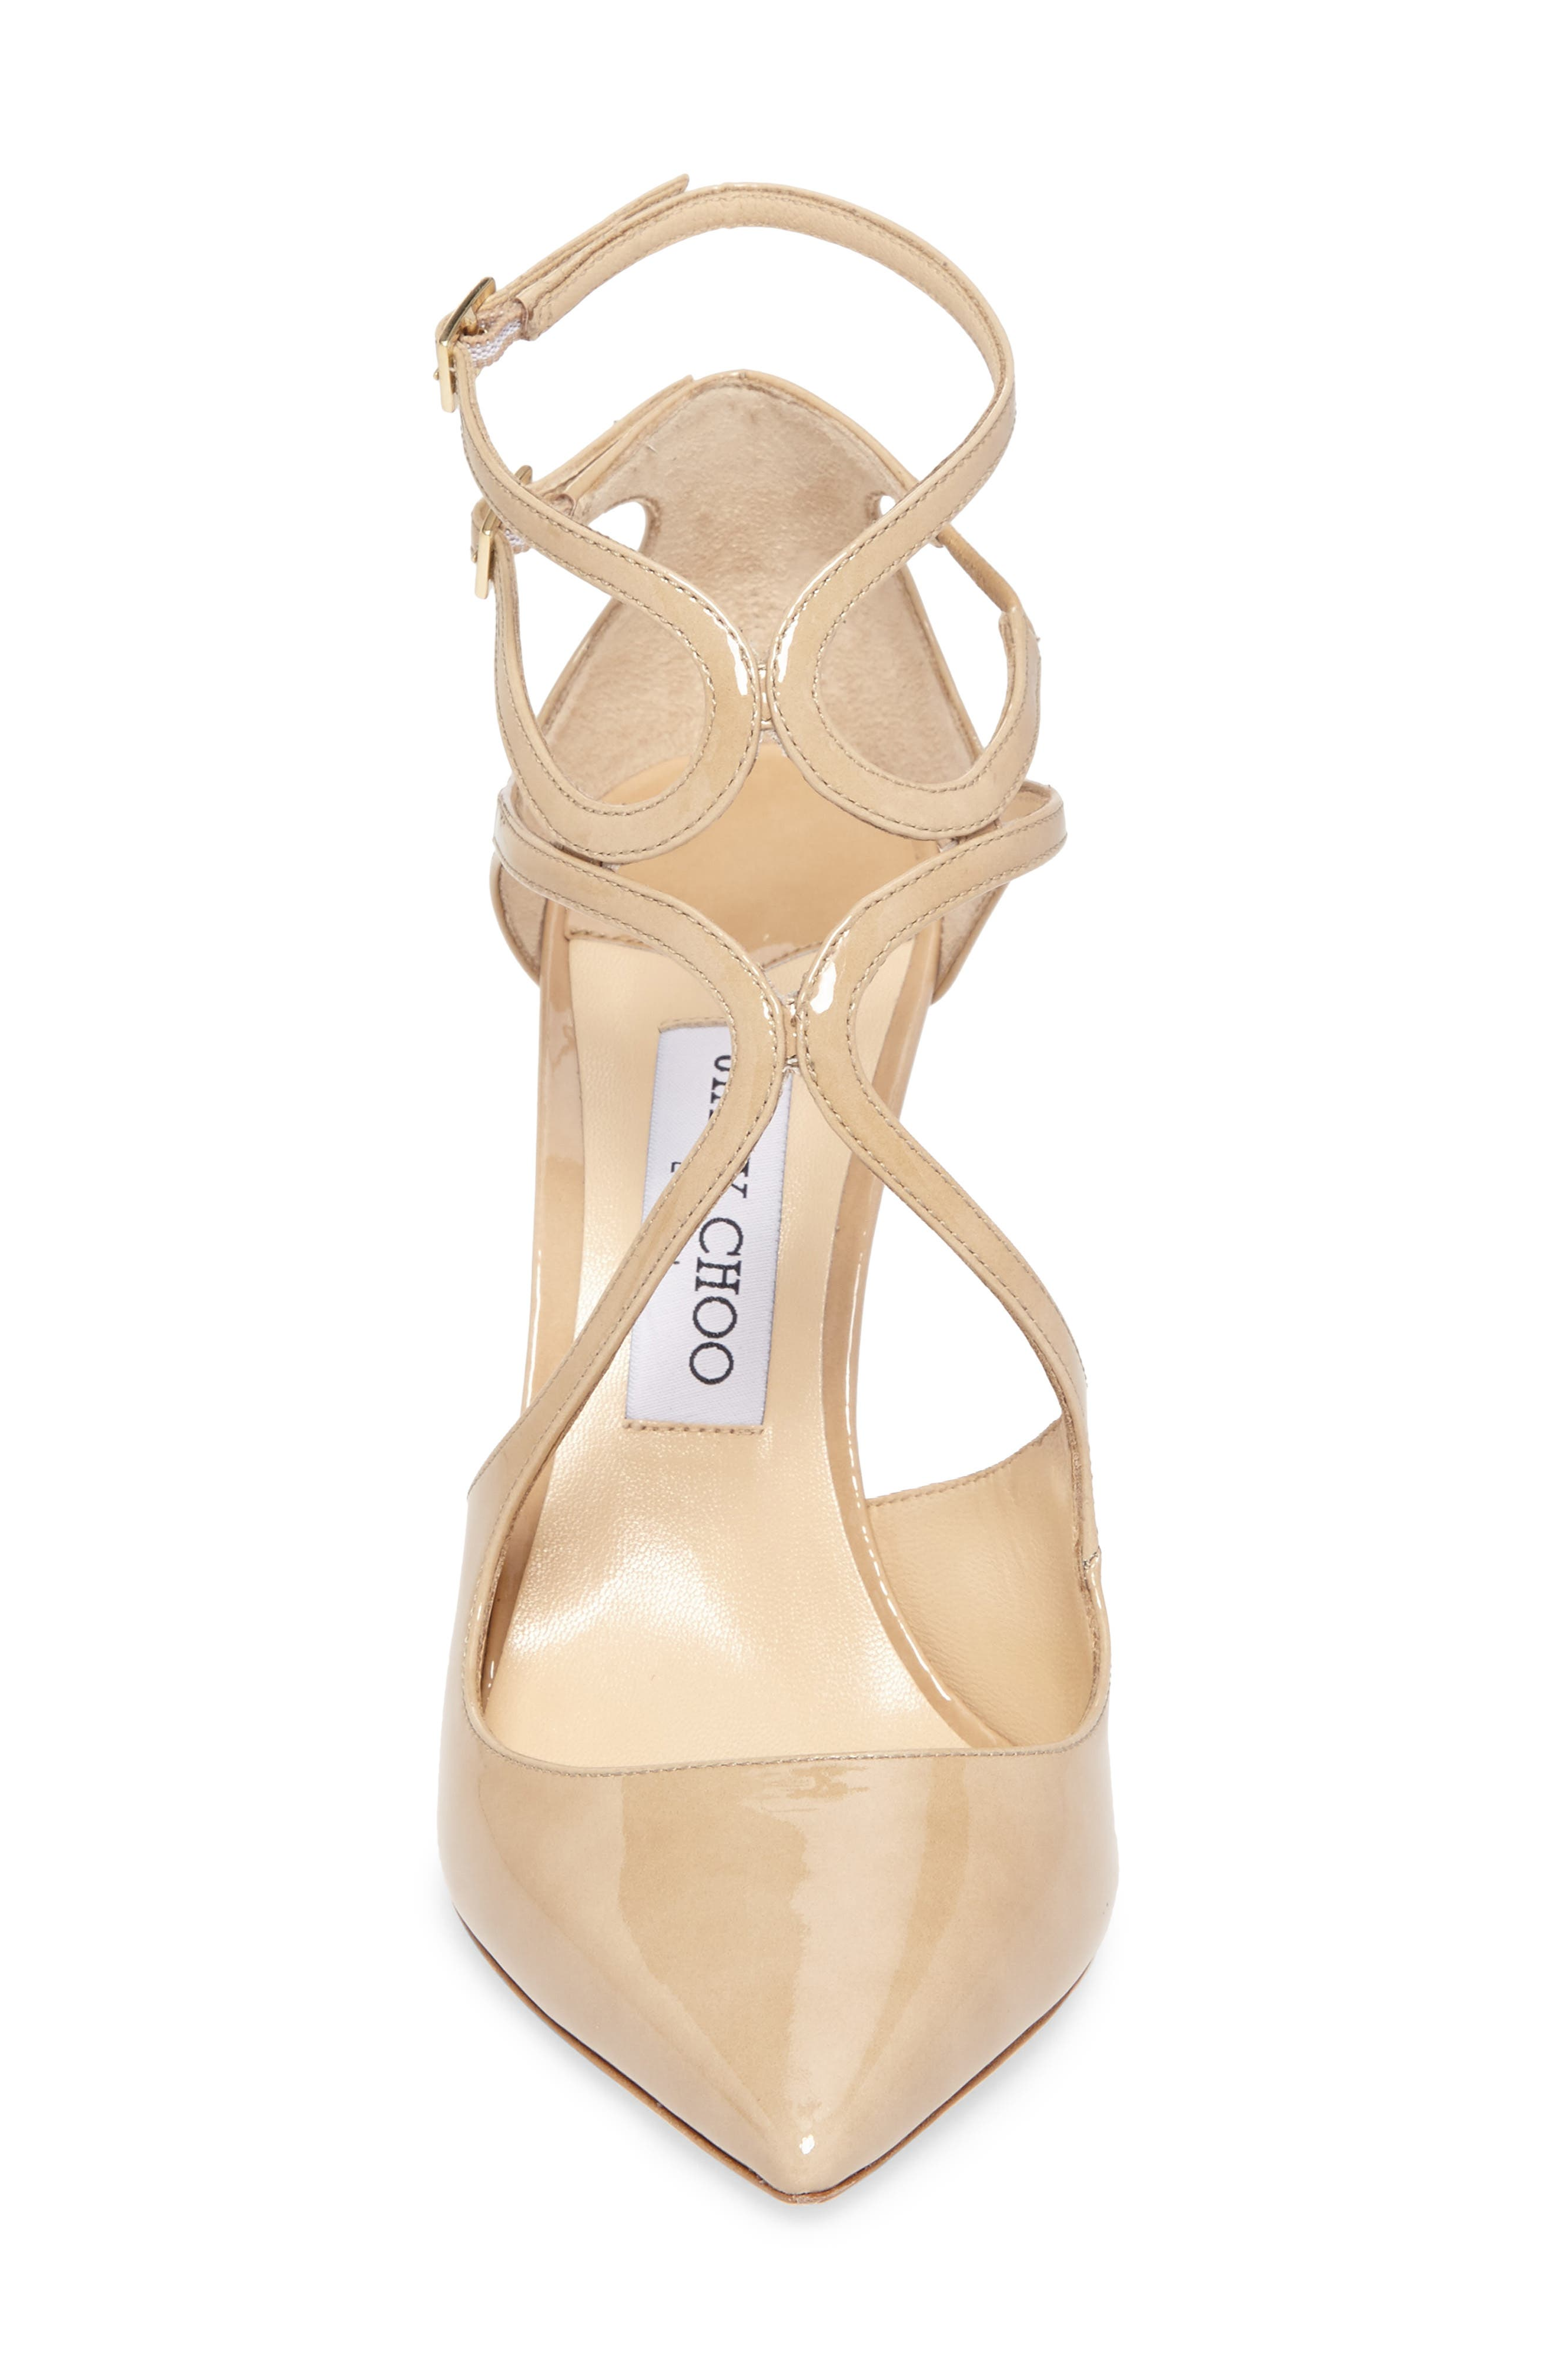 Lancer Strappy Pump,                             Alternate thumbnail 4, color,                             NUDE PATENT